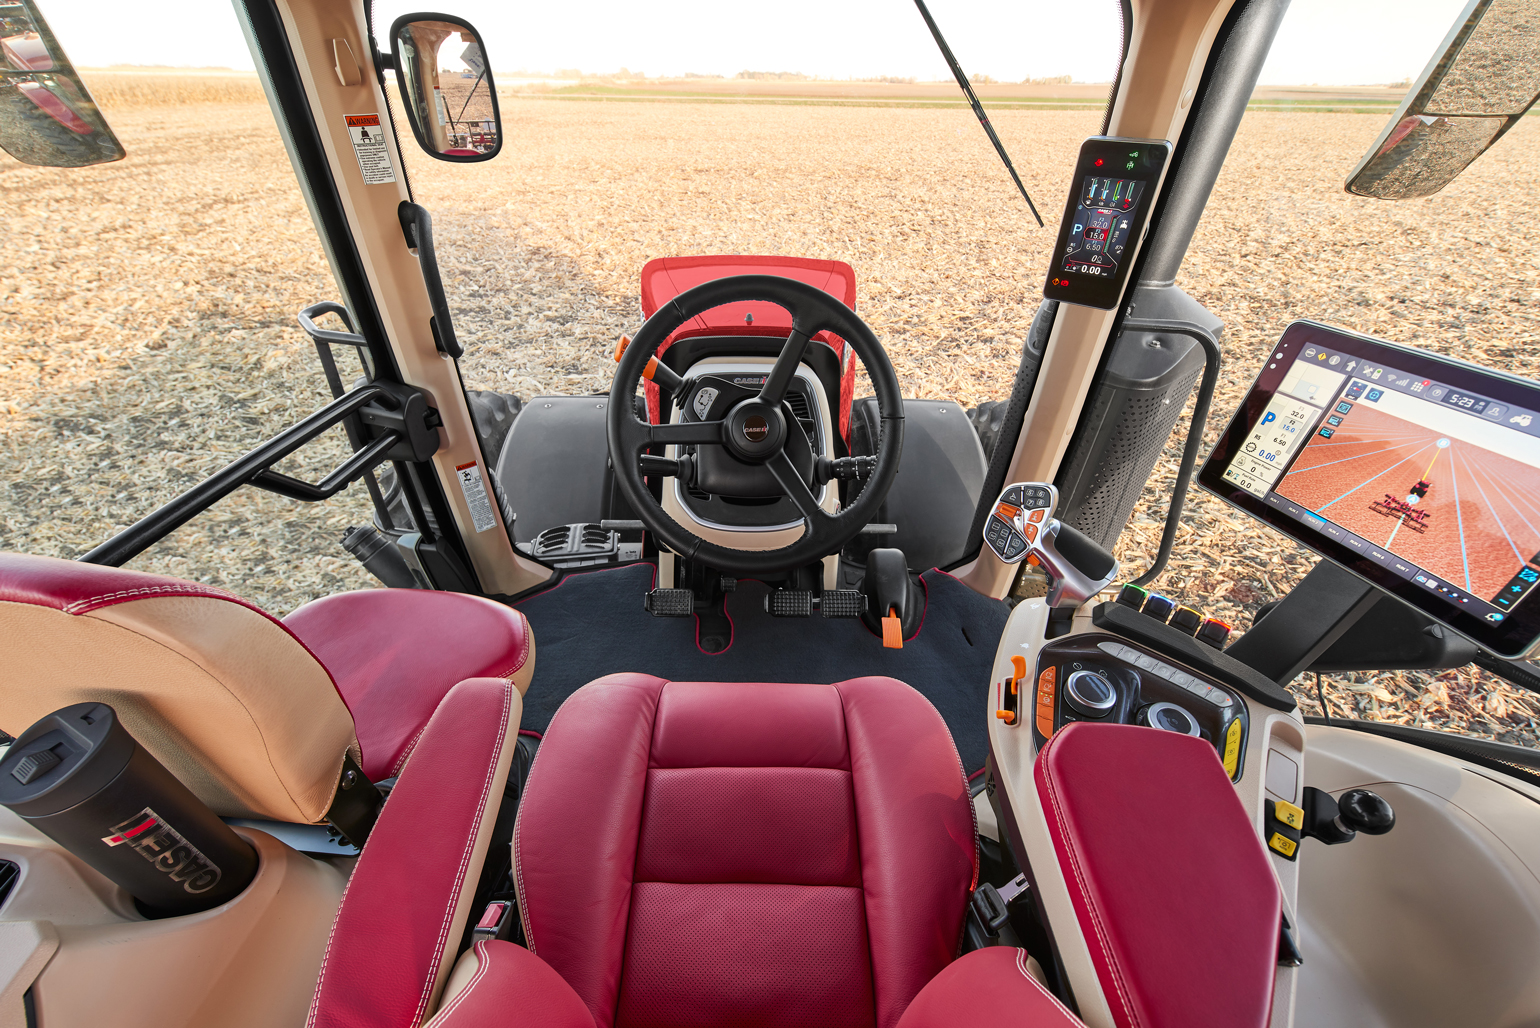 view from inside Case IH tractor cab